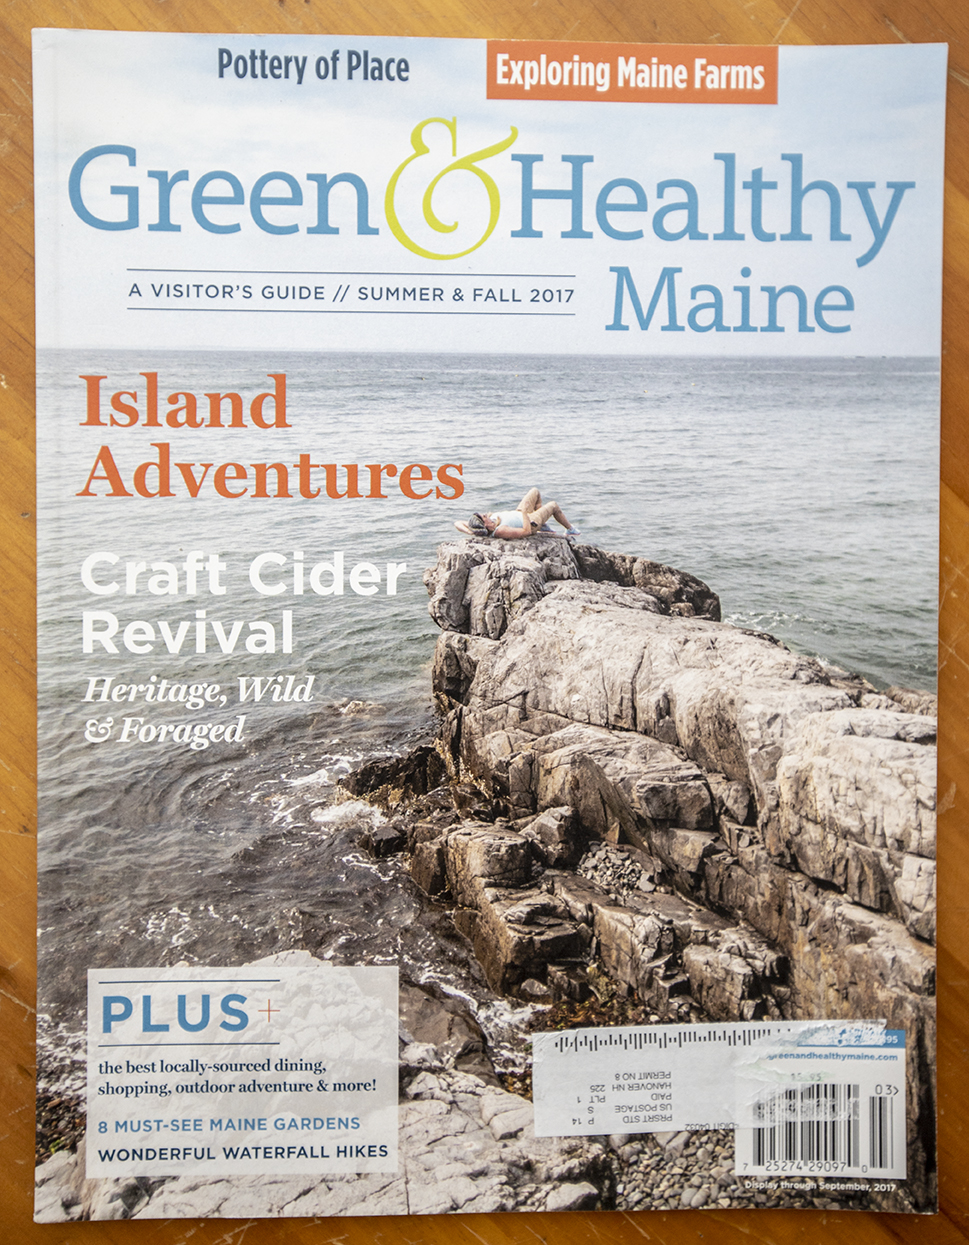 Green and Healthy Maine, Summer/Fall 2017